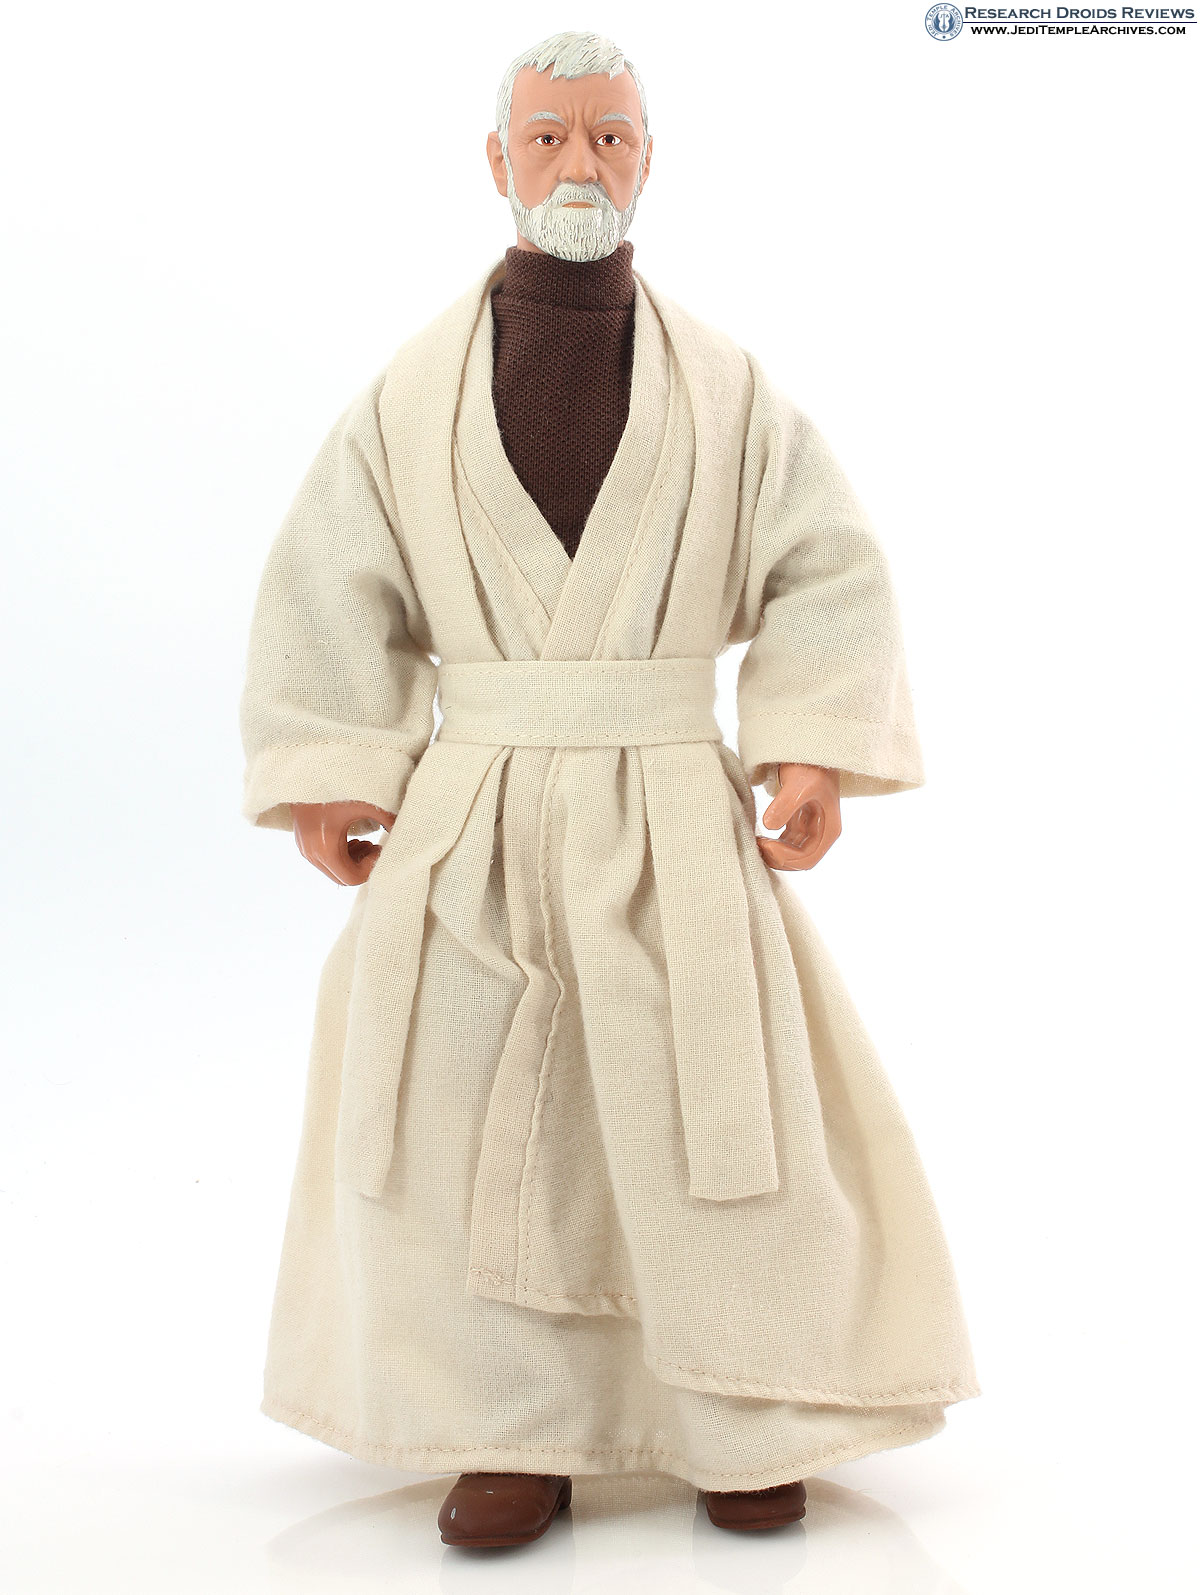 Review_ObiWanKenobi12InchFigurePOTF2FBCT001.jpg